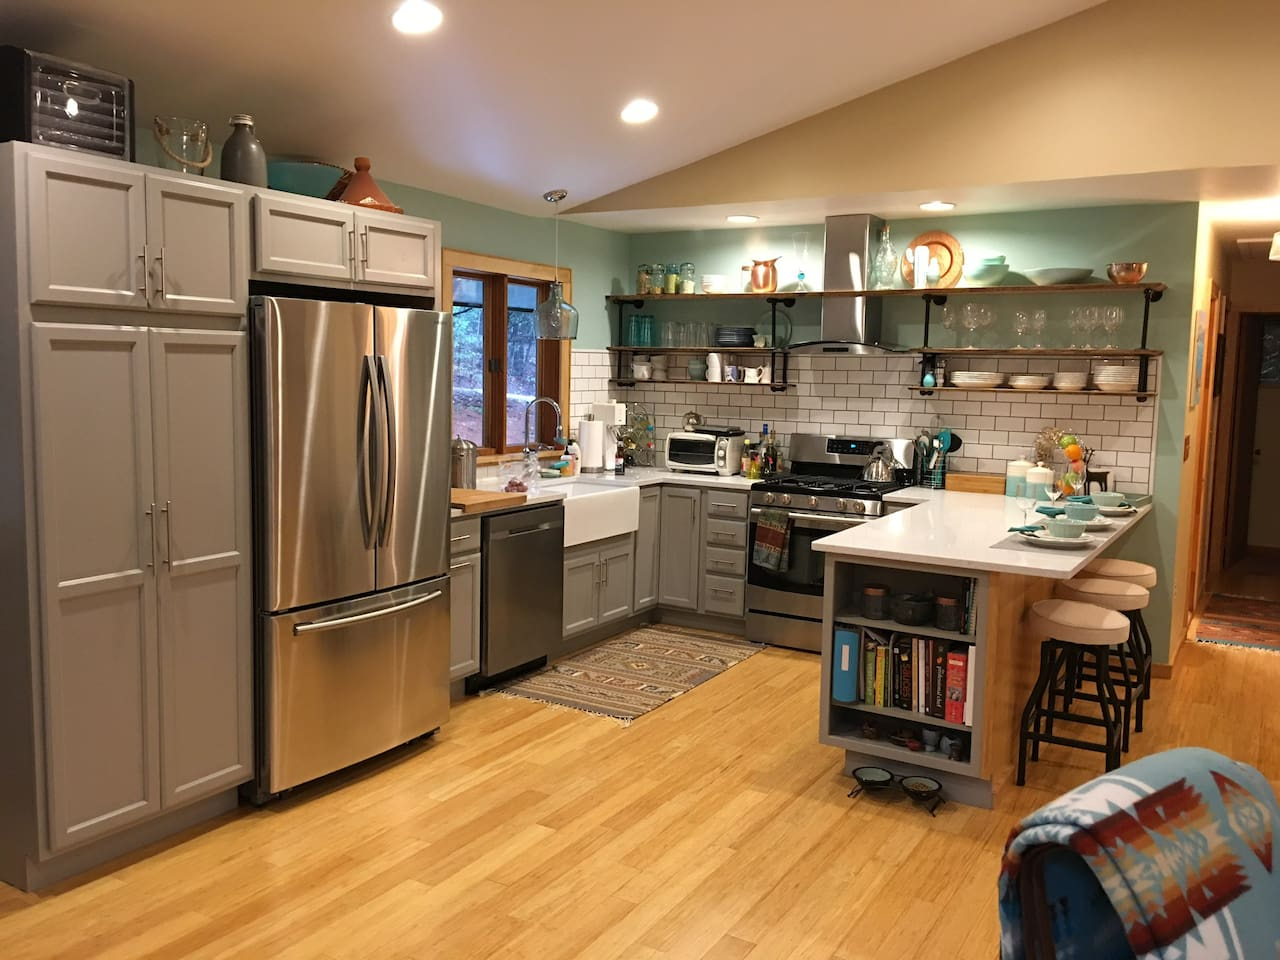 Breakfast bar and kitchen, lots of counter space!